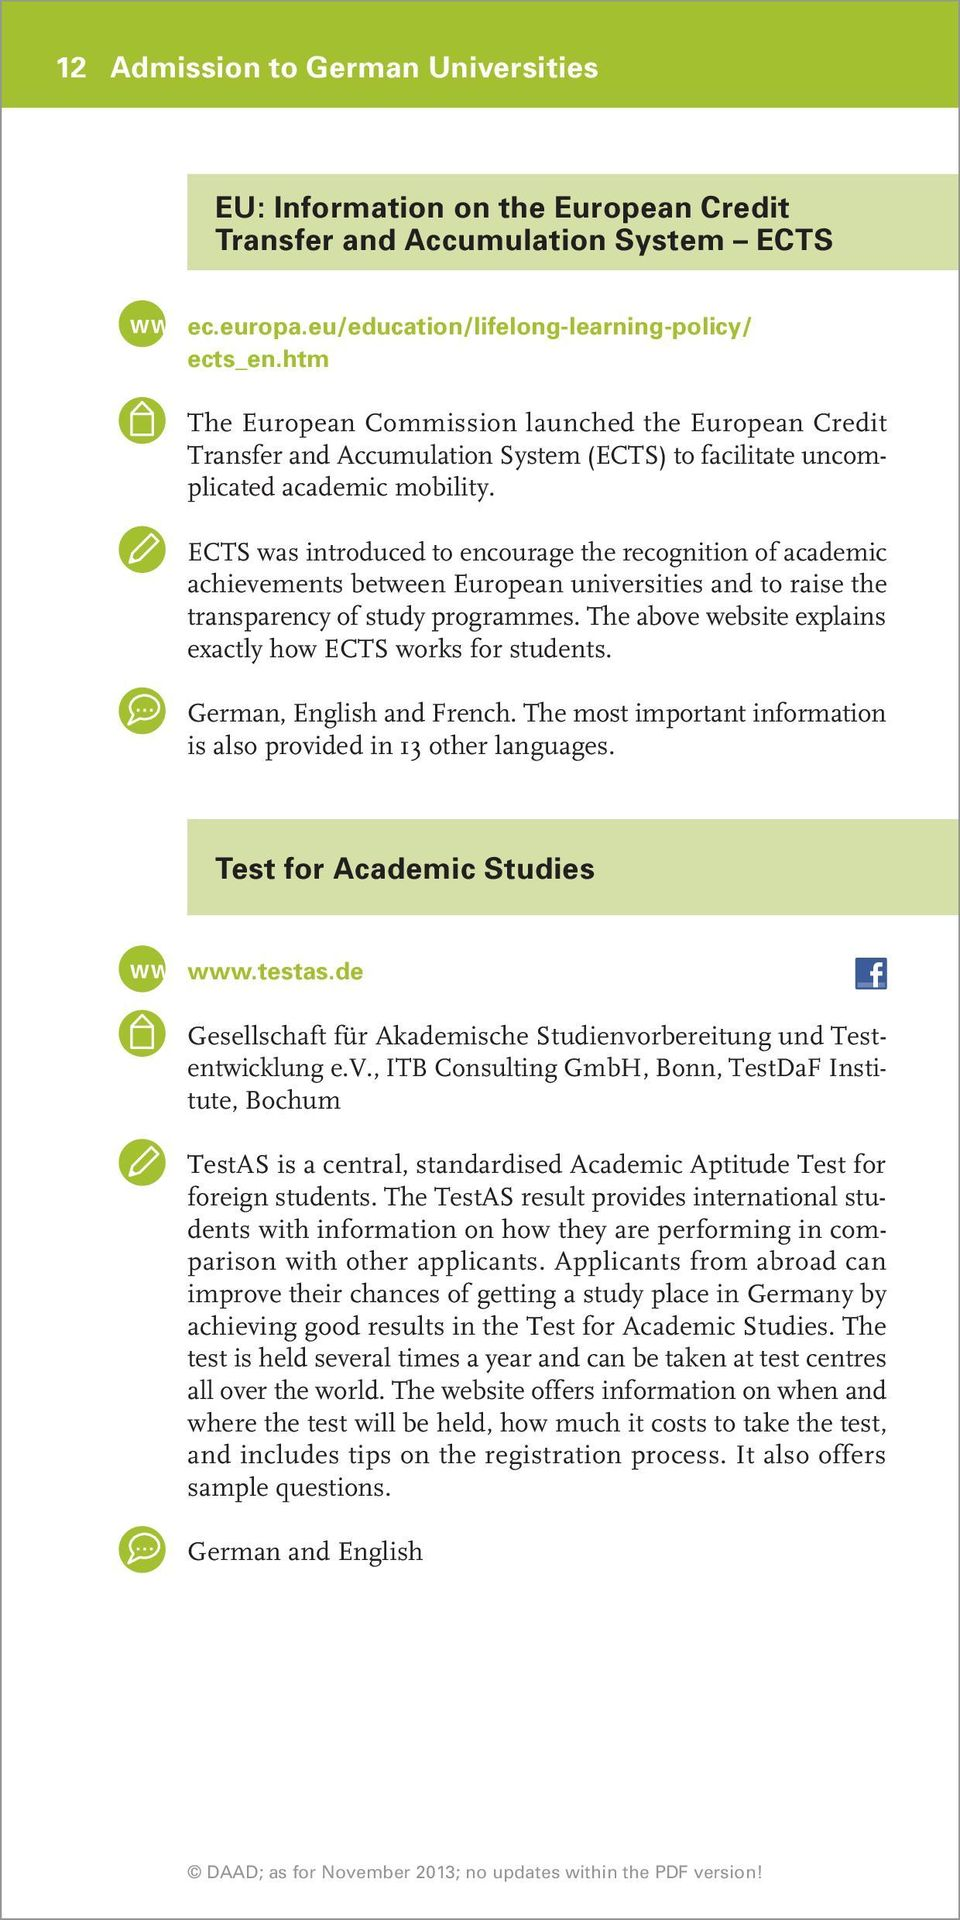 ECTS was introduced to encourage the recognition of academic achievements between European universities and to raise the transparency of study programmes.